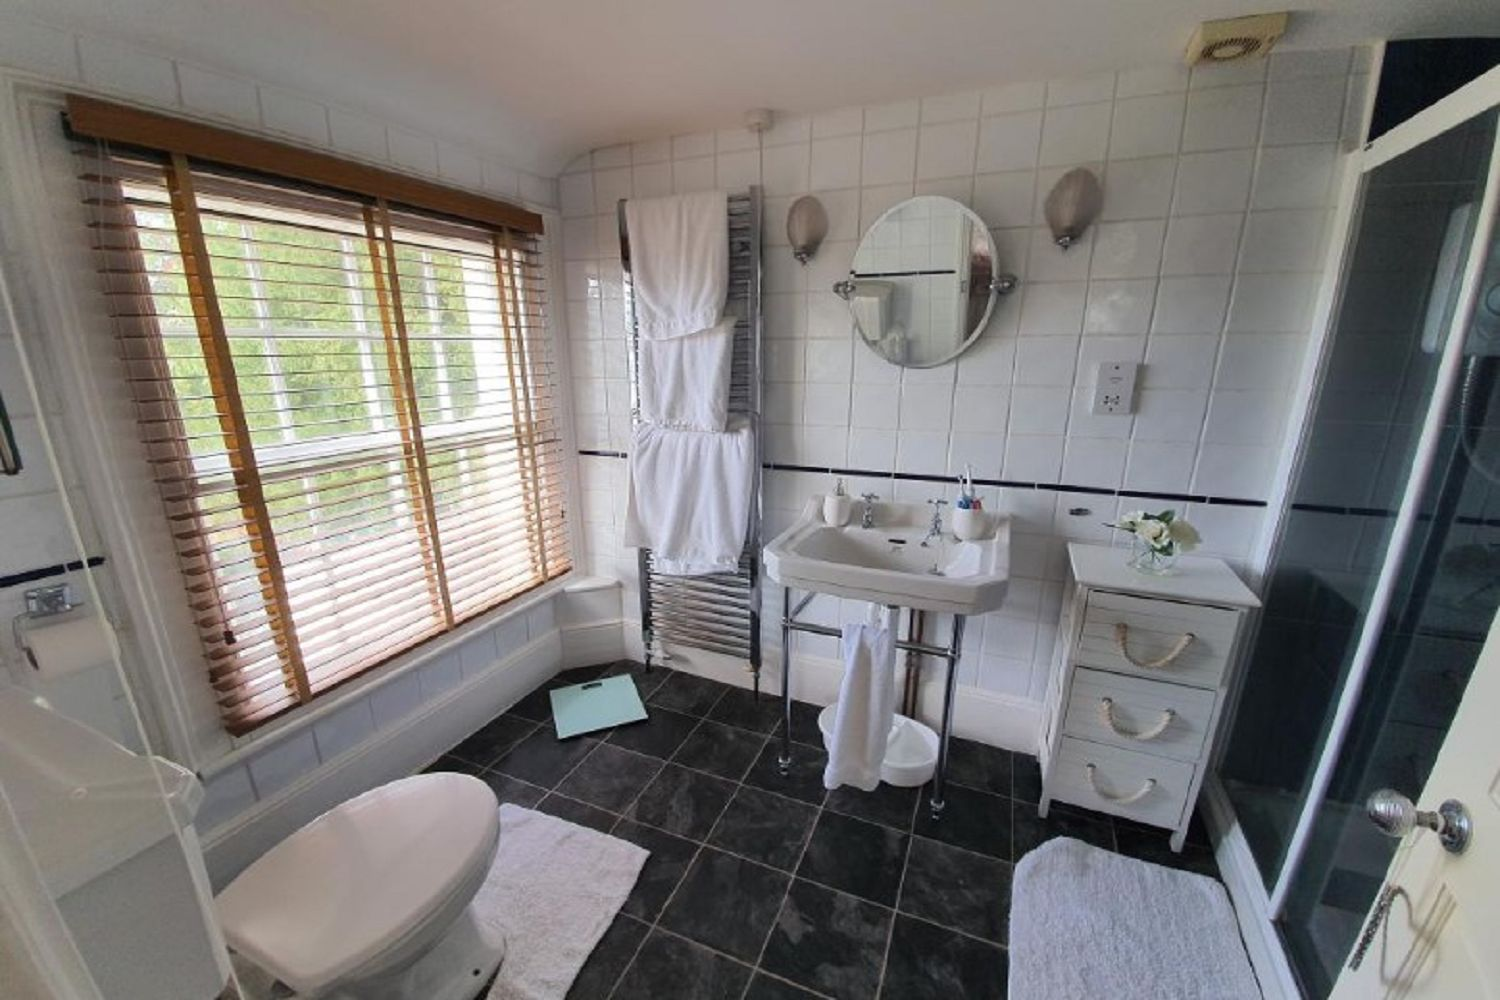 Flat , Bridge Hill House, Higham Lane, Bridge, Canterbury, CT4 5AY